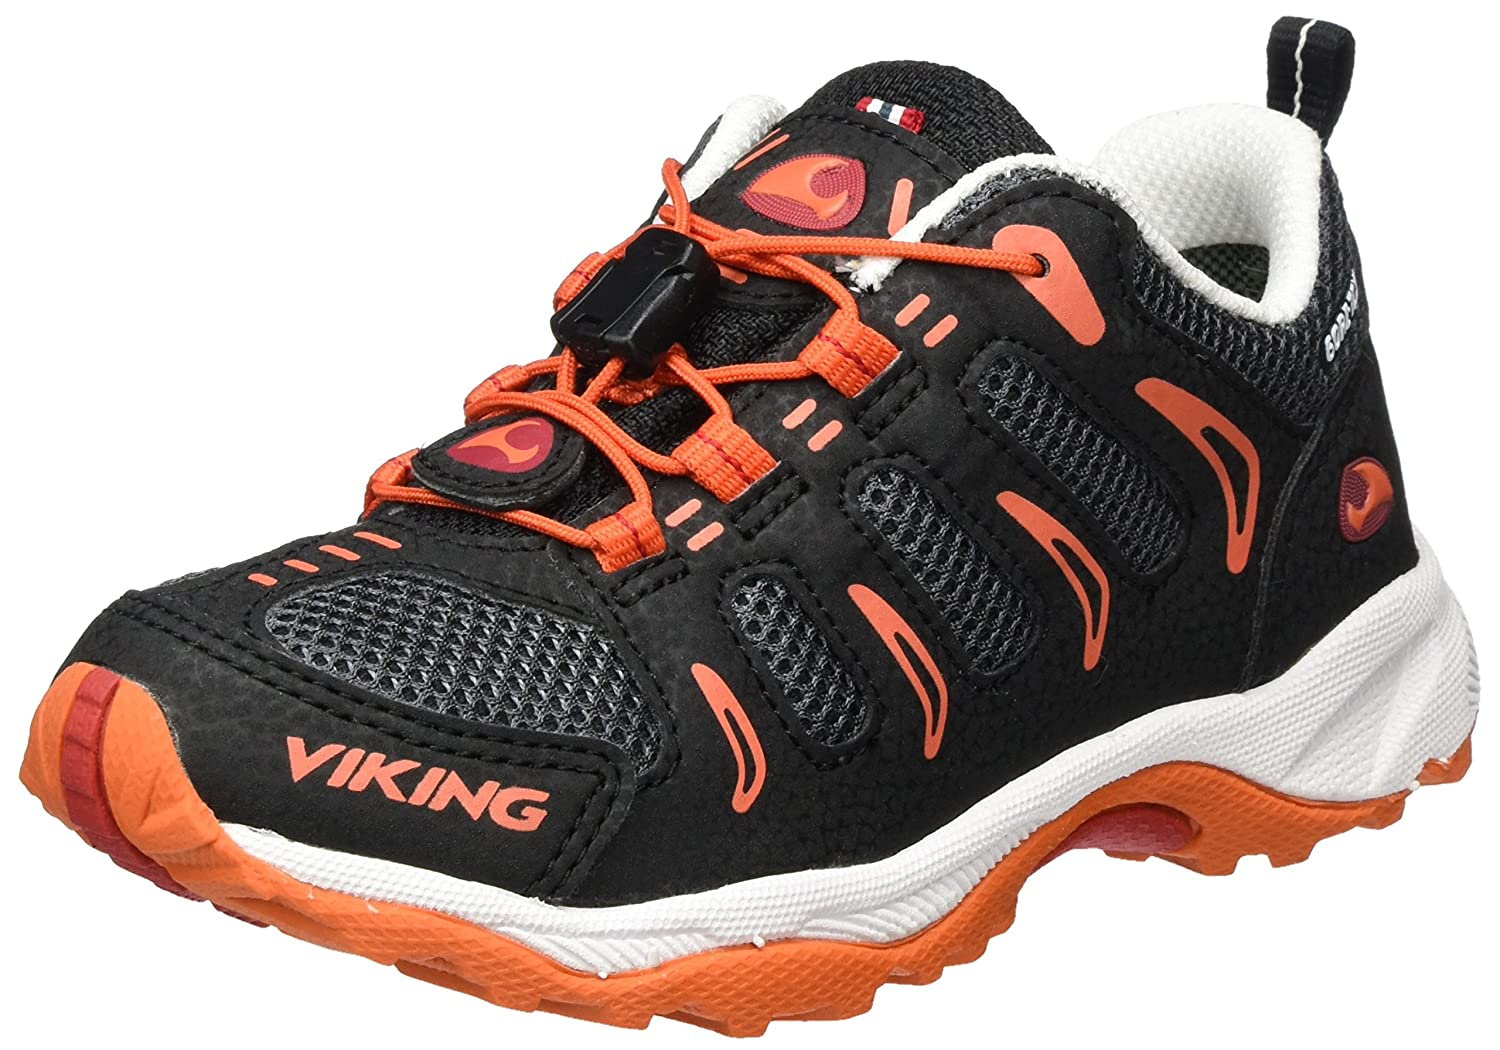 viking Unisex-Kinder Terminator Outdoor Fitnessschuhe Schwarz (Black/Orange) 32 EU 3-42450